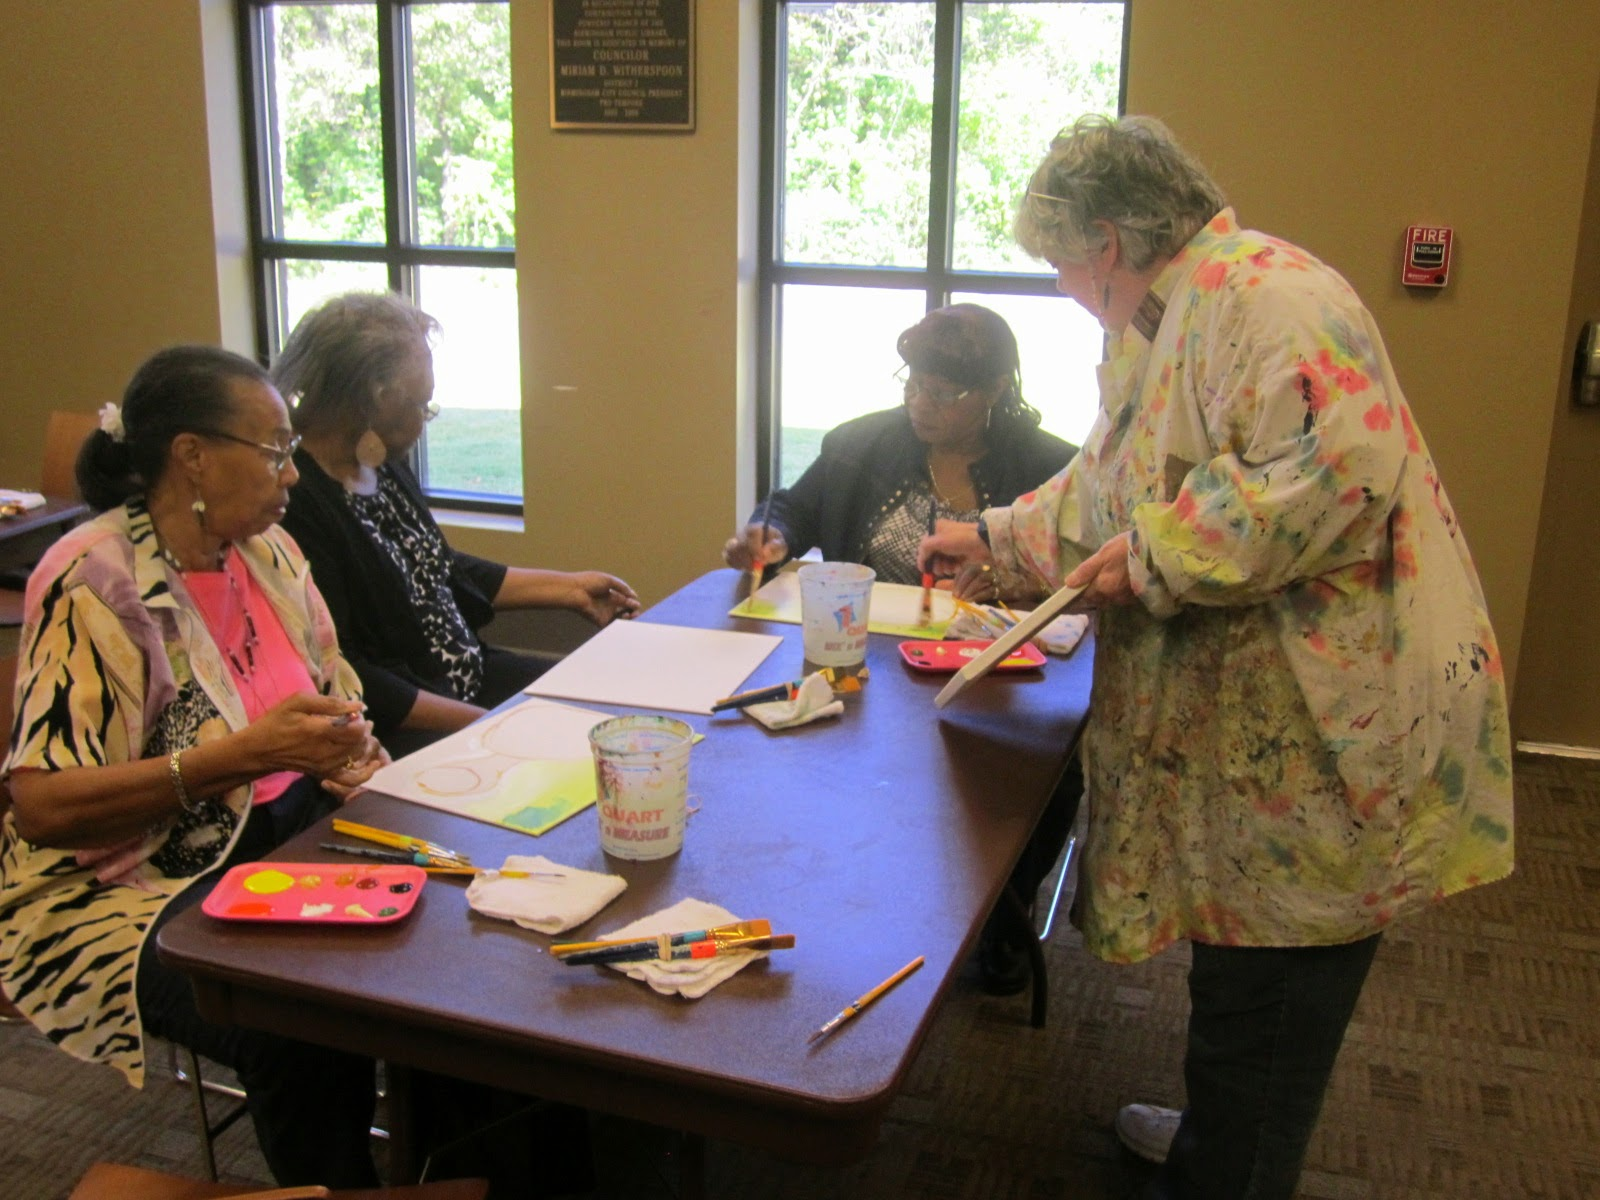 photo of patrons doing a craft